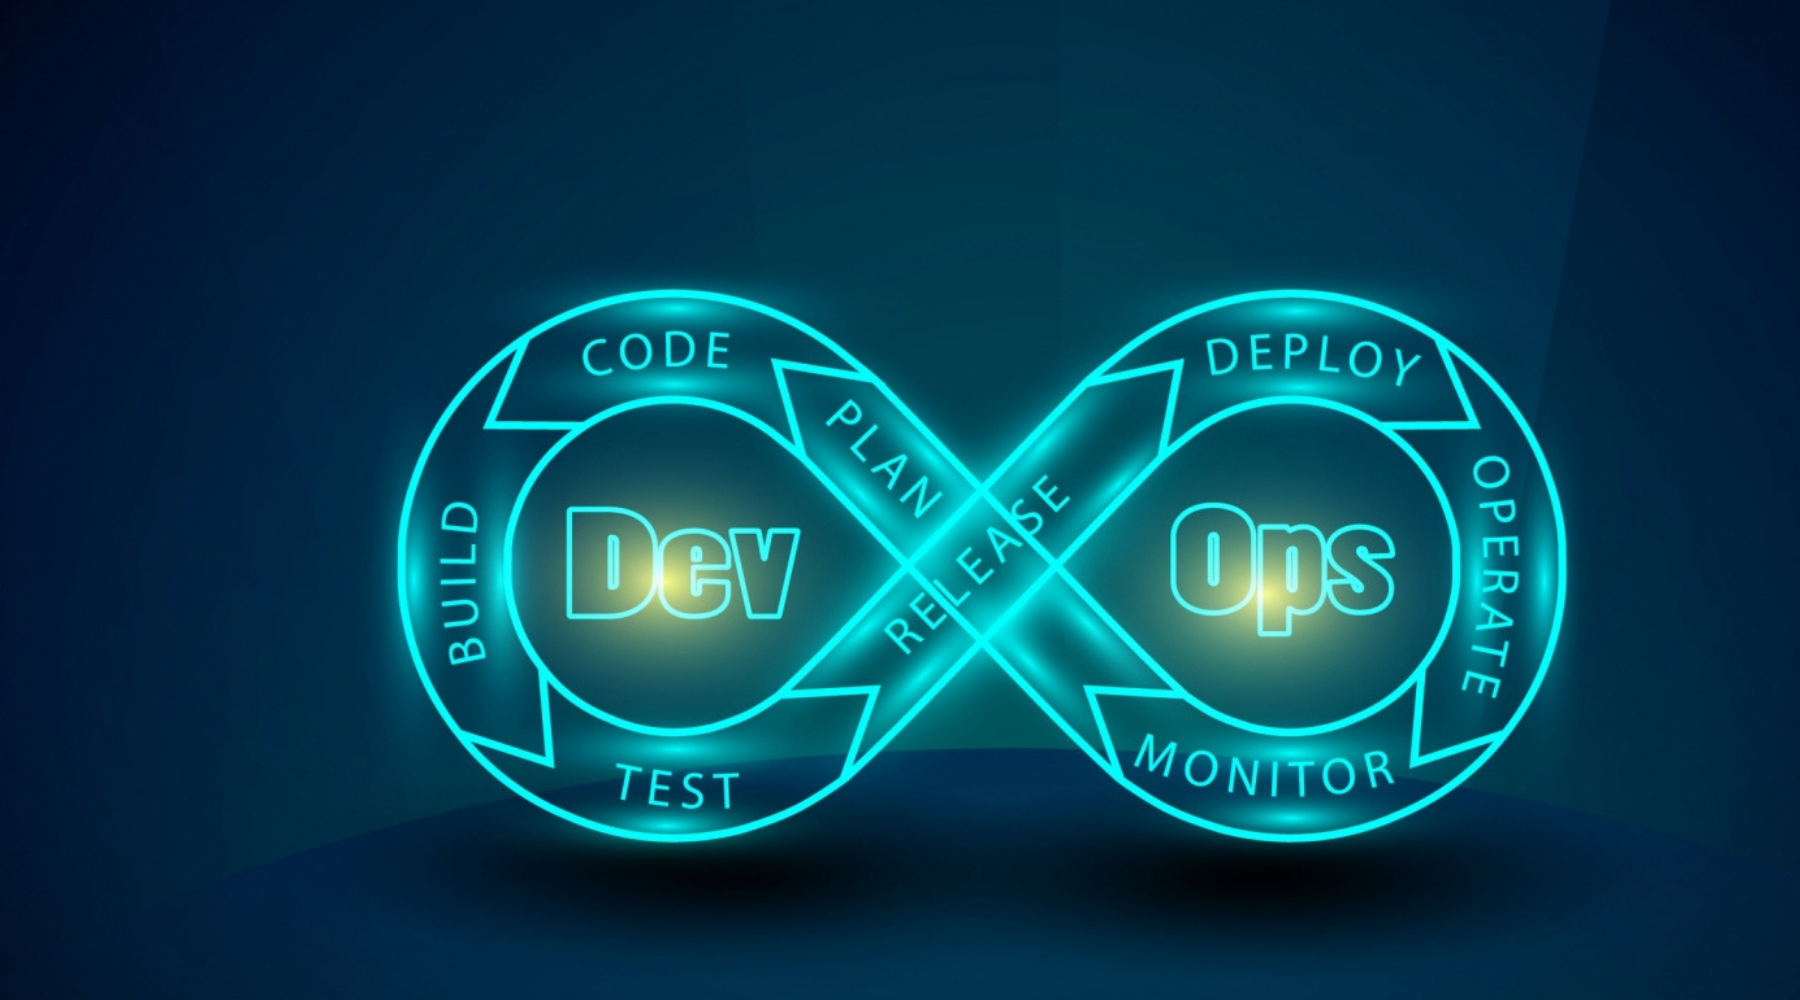 UPDATED List of Devops Blogs and Websites For Guest Blog Posts wallpaper